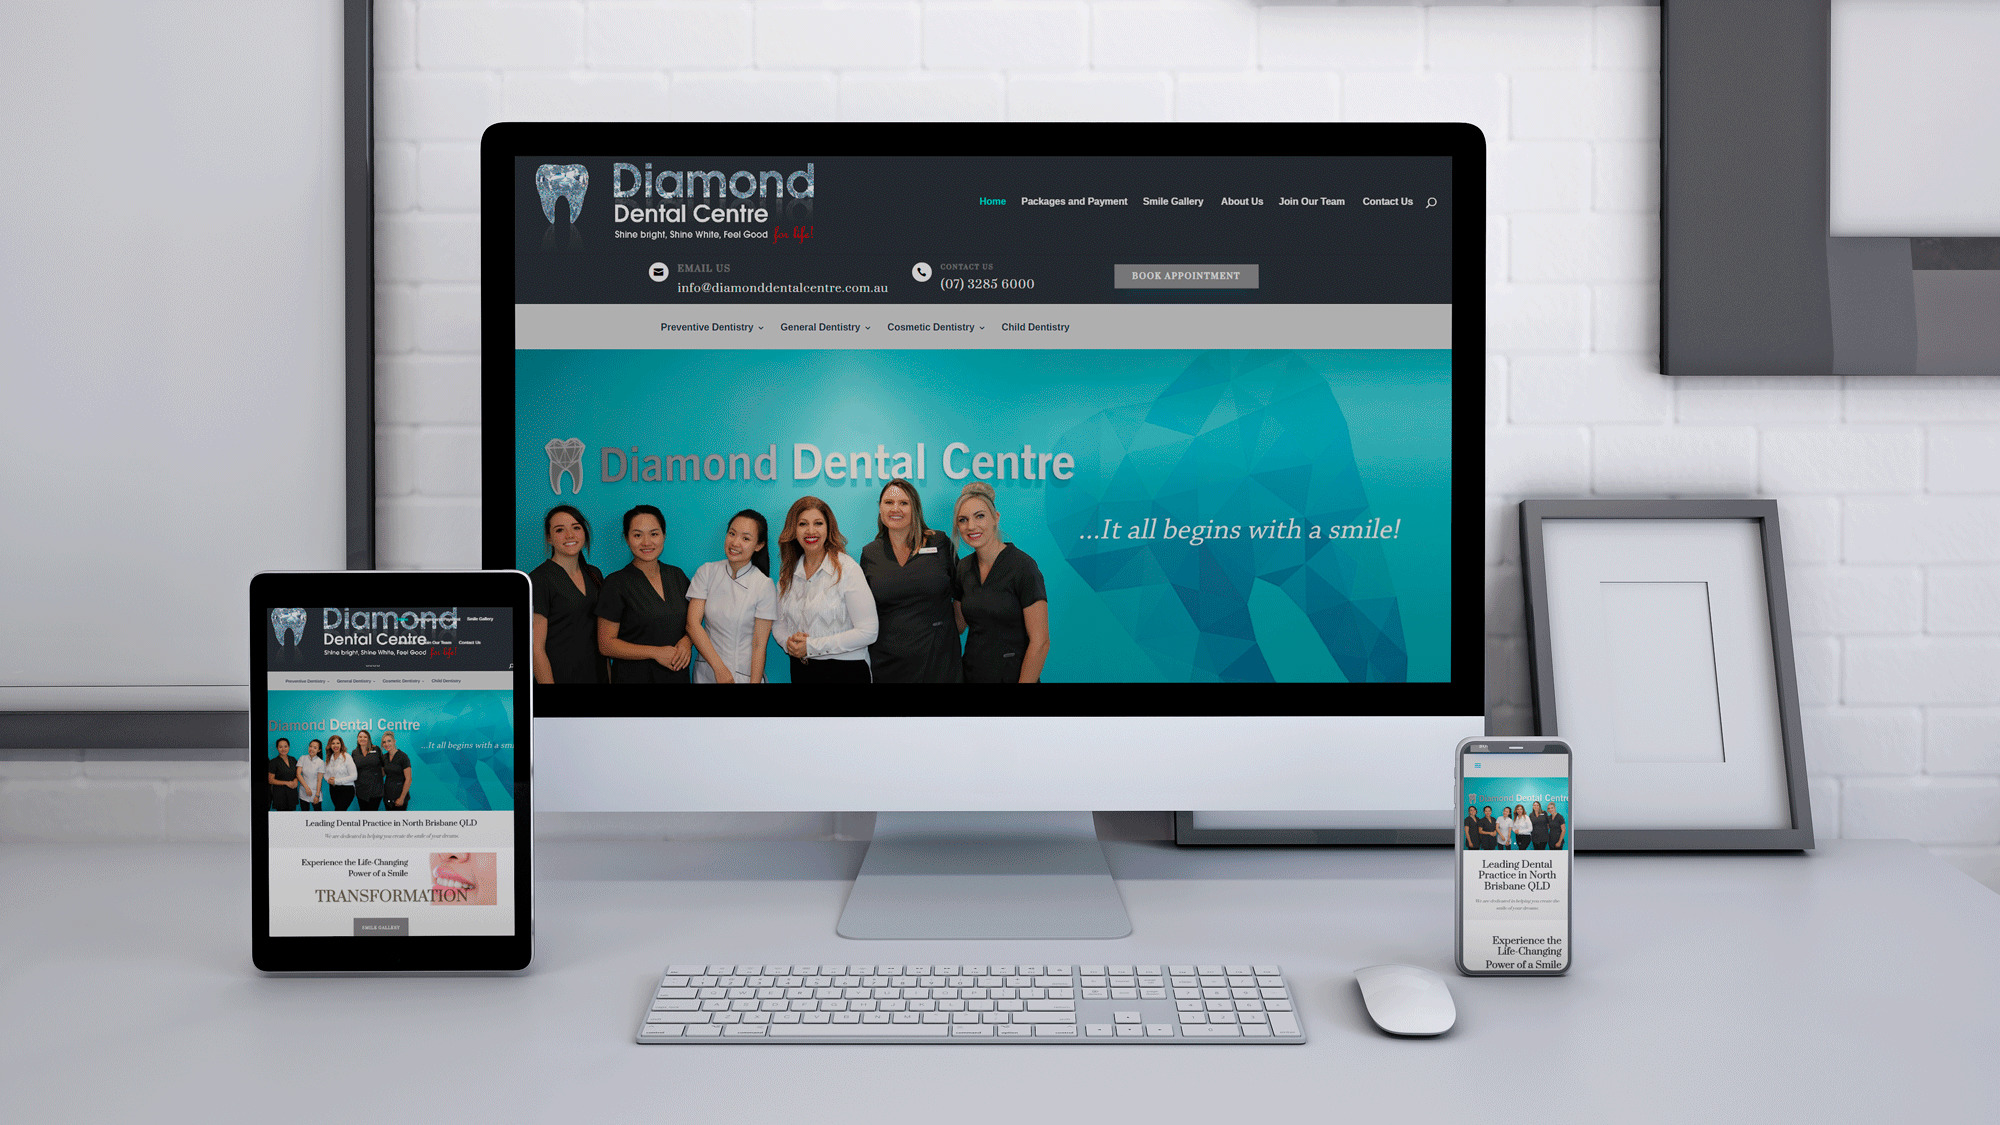 diomond-dental